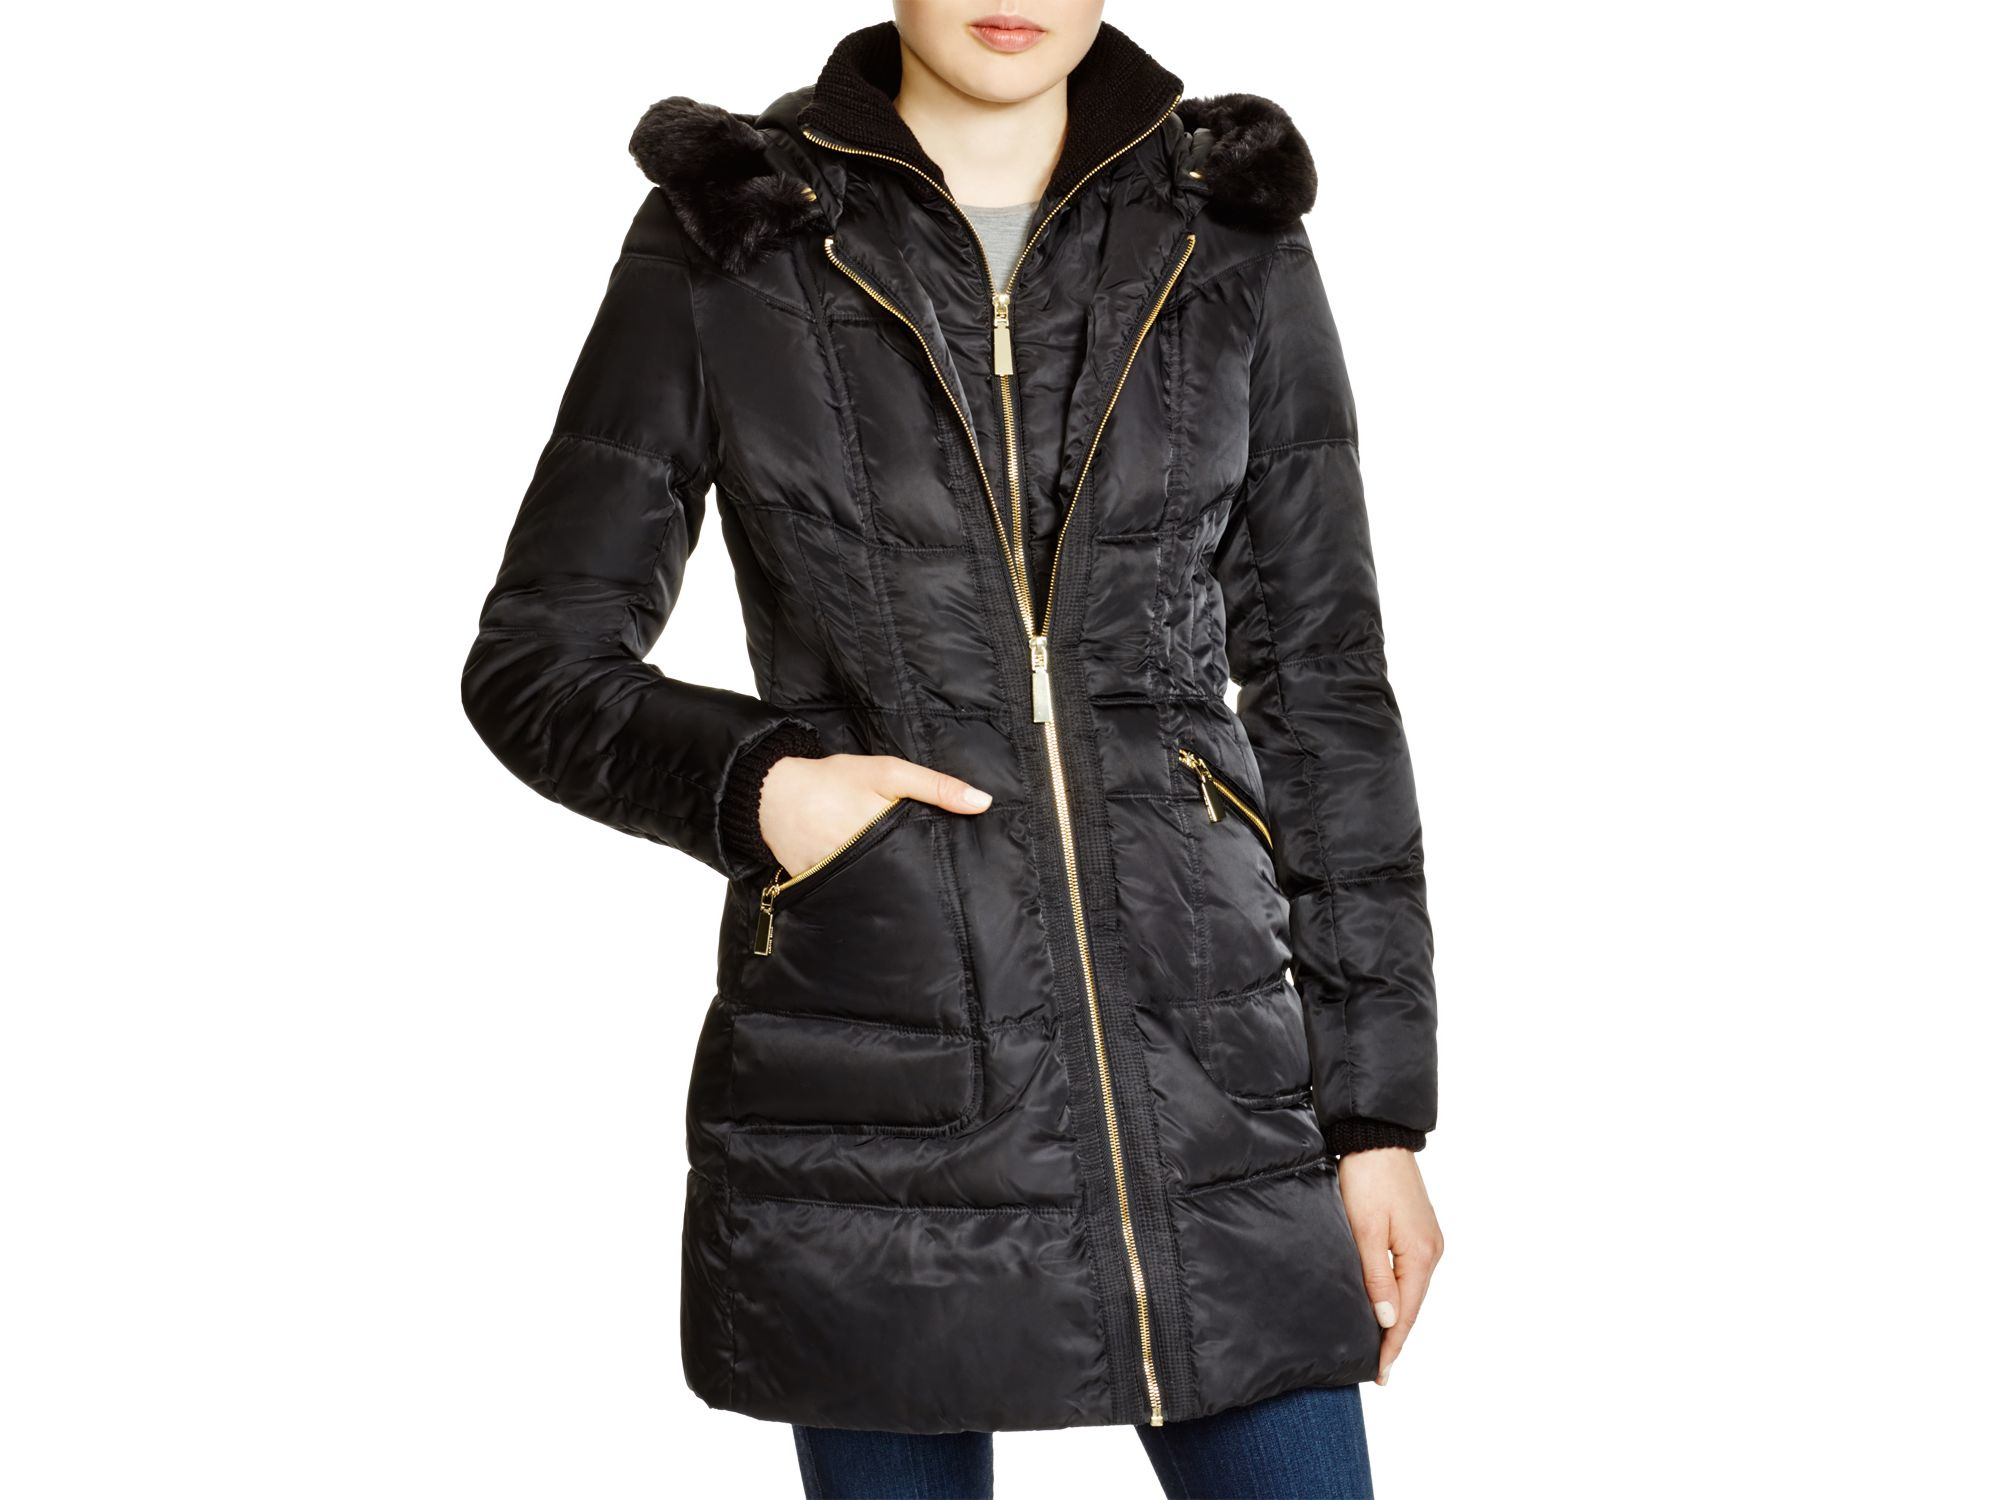 Lyst Vince Camuto Faux Fur Trim Hooded Puffer Coat In Black